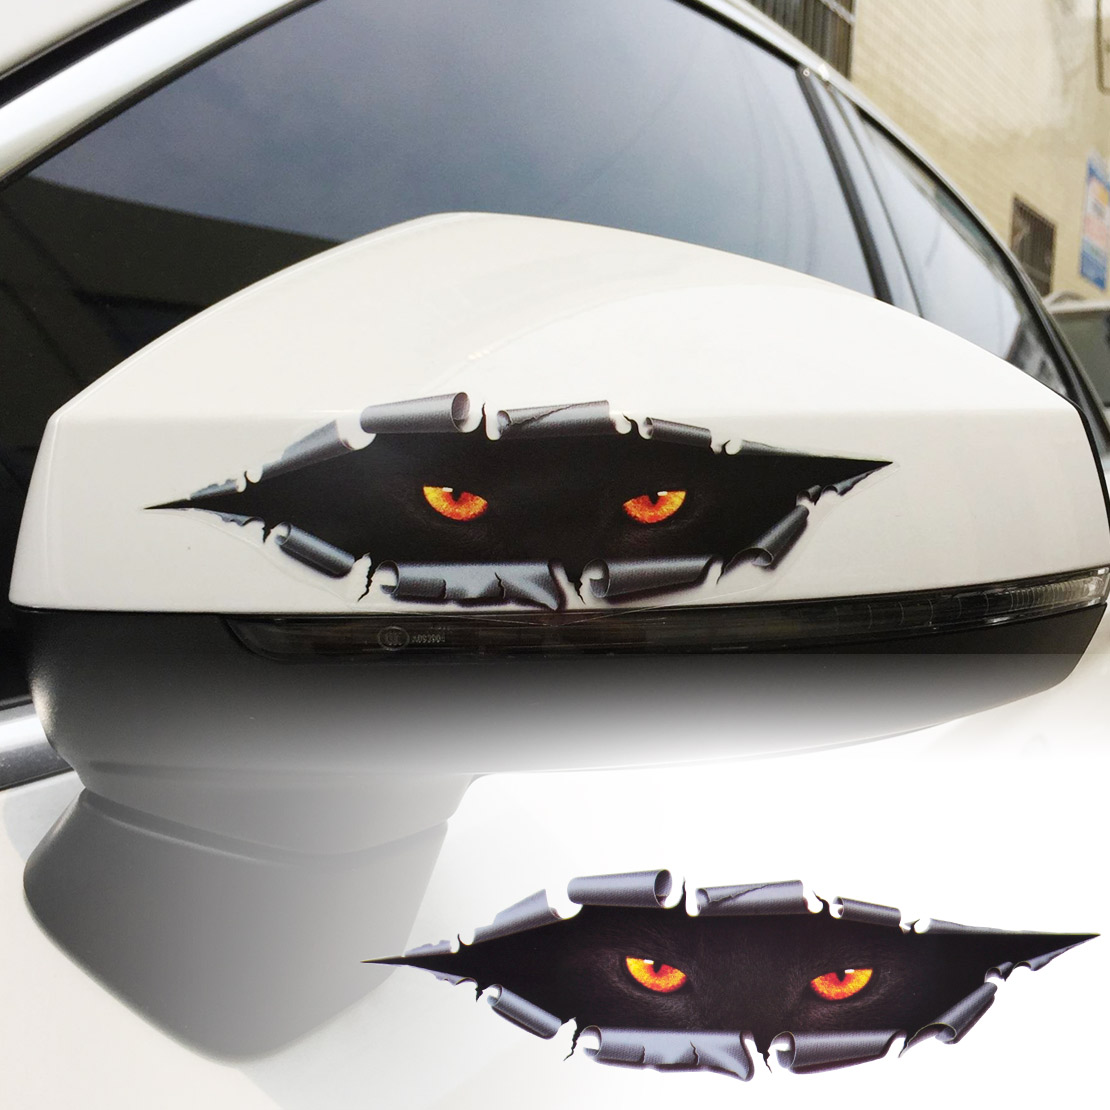 auto car window 3d creative simulation monster leopard eye peeking sticker decal ebay. Black Bedroom Furniture Sets. Home Design Ideas